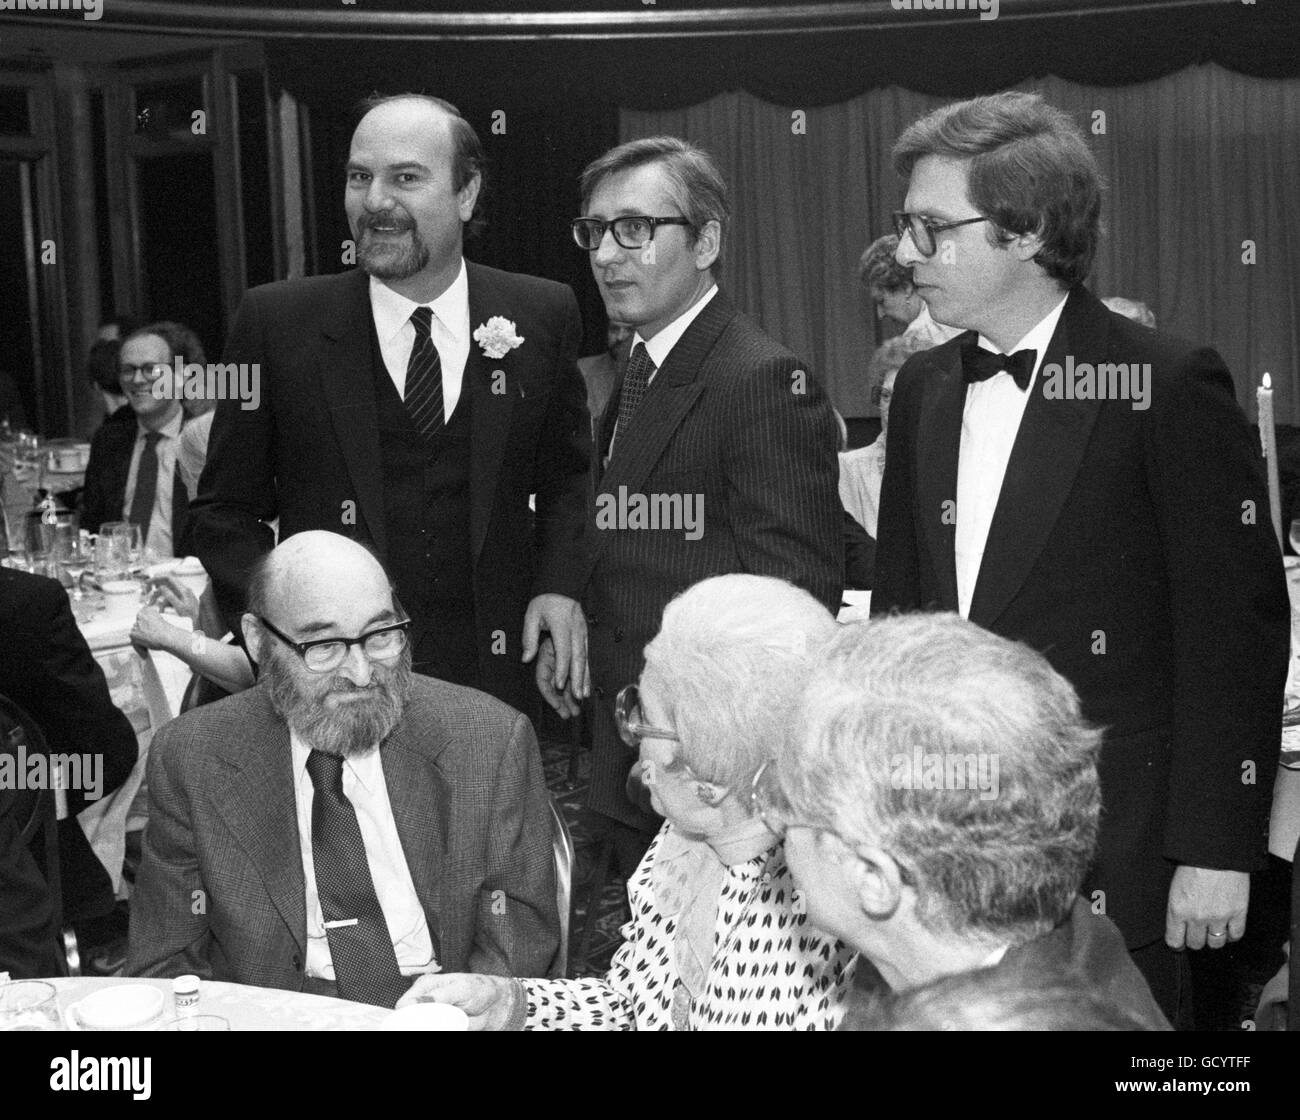 Frederic Dannay (seated, with beard) at an event hosted by the Mystery Writers of America - Stock Image